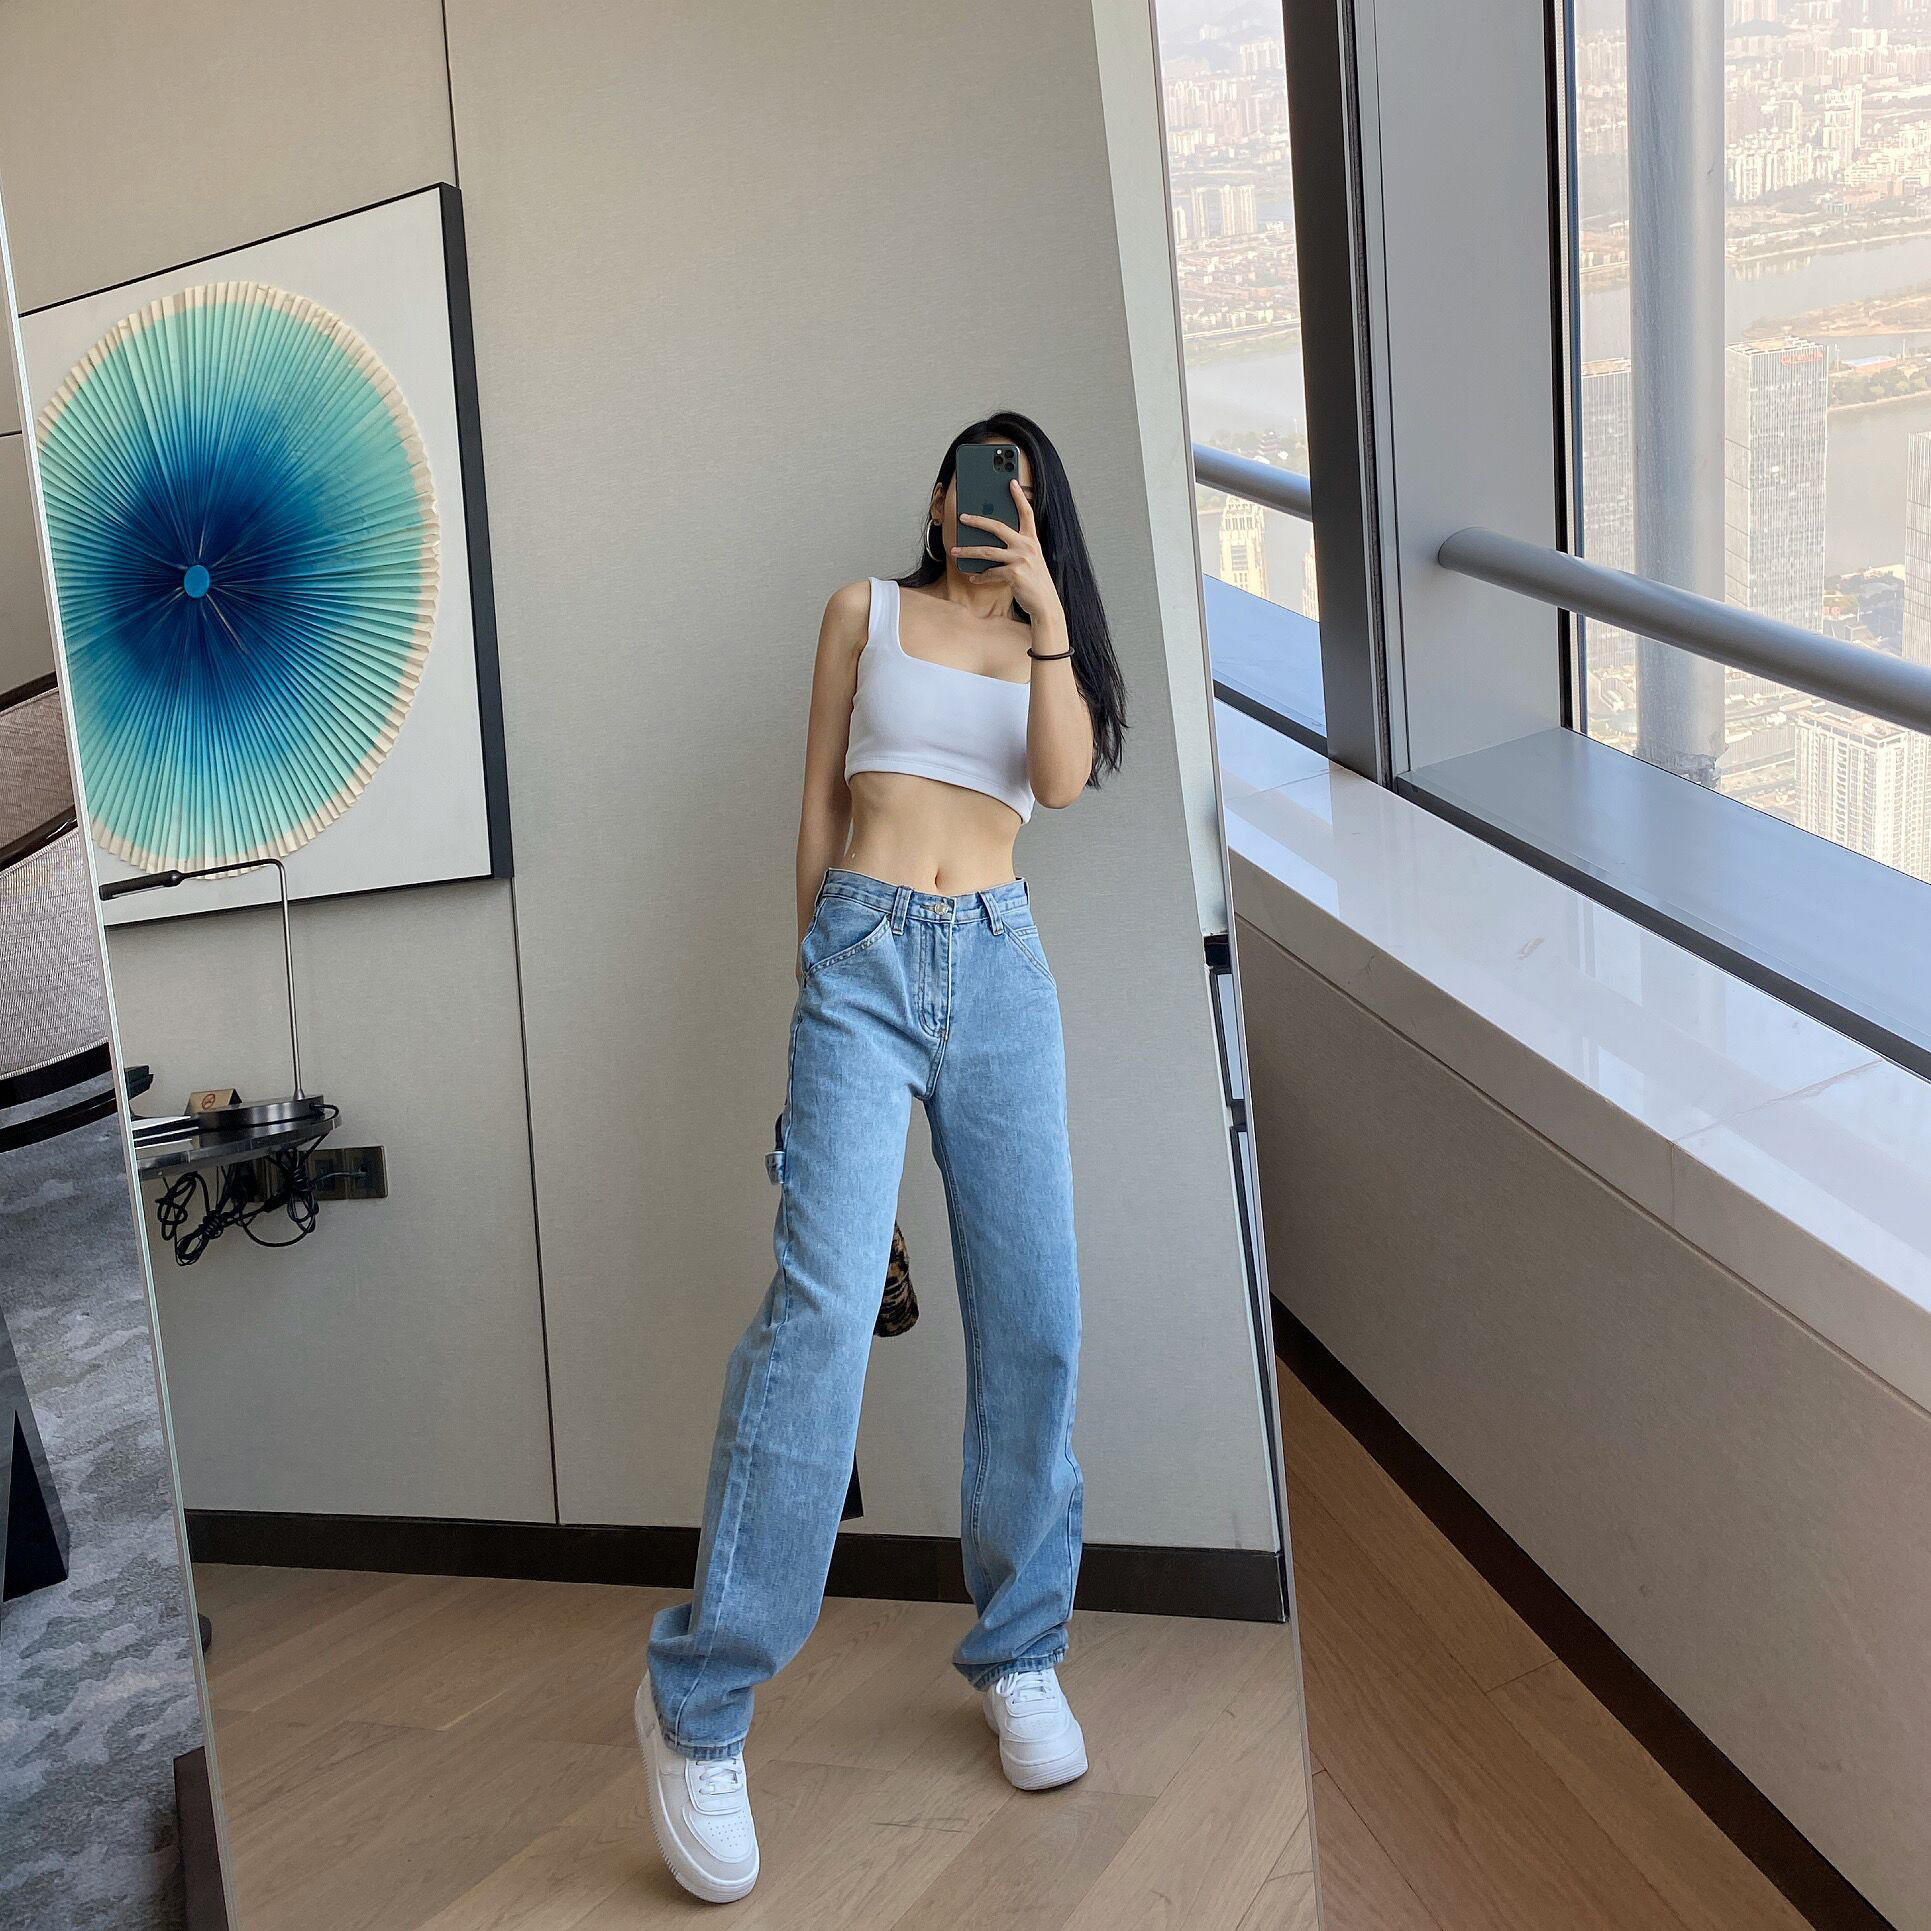 Street High Waist Straight Jeans Women Were Thin And Loose Casual Wide Leg Pants Fashion Boyfriend Style Denim Girlfriend Pants